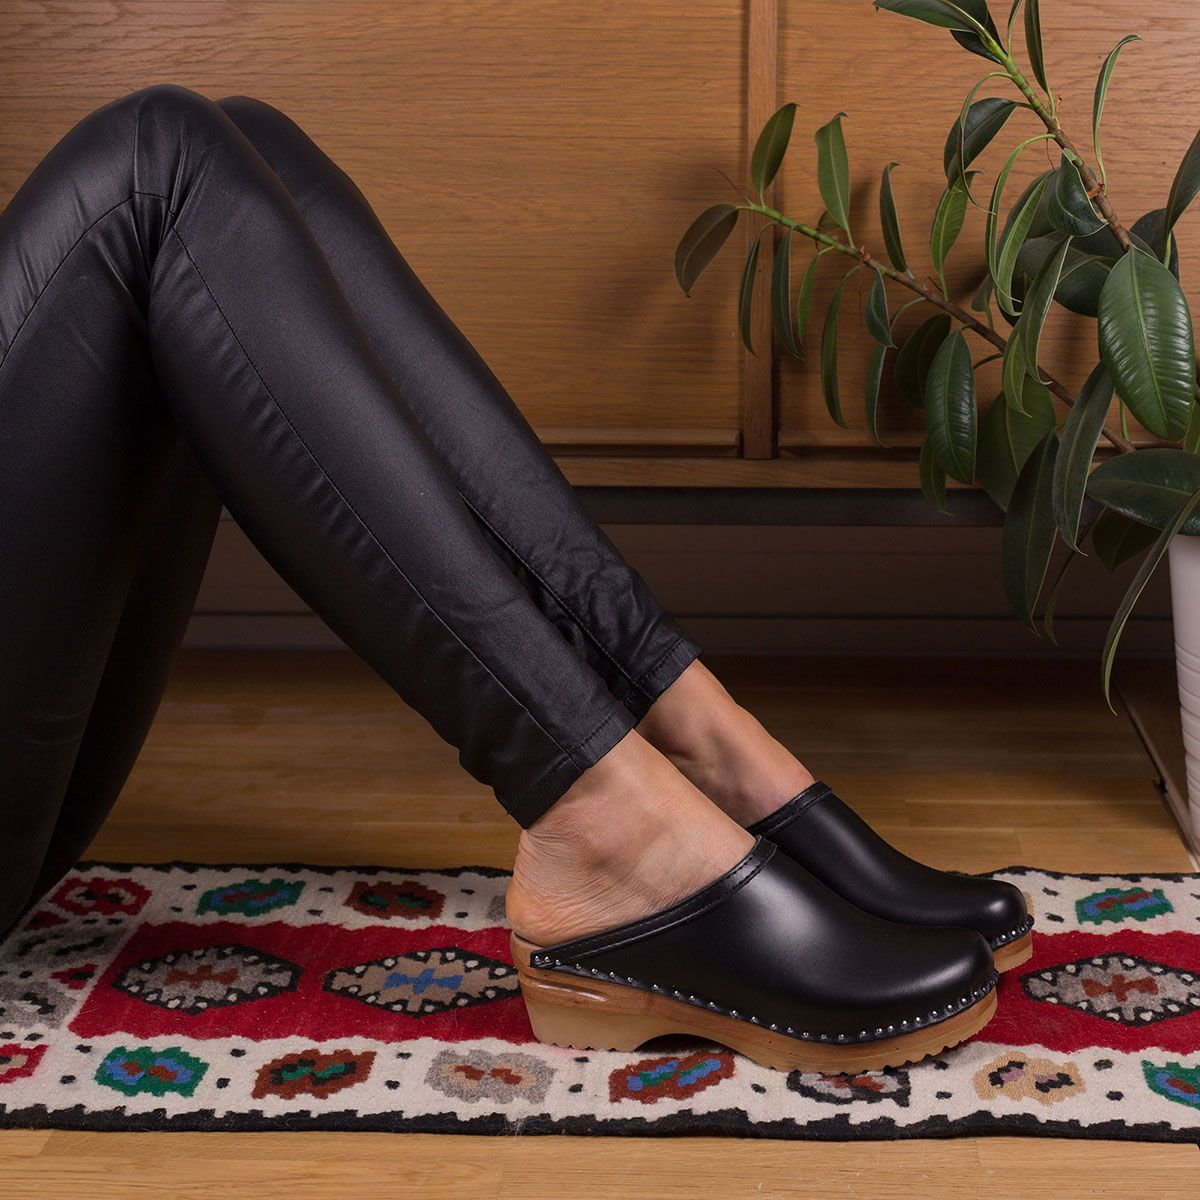 UP TO 50% on selected models in our webshop! #CyberMonday #Clogs #Sale